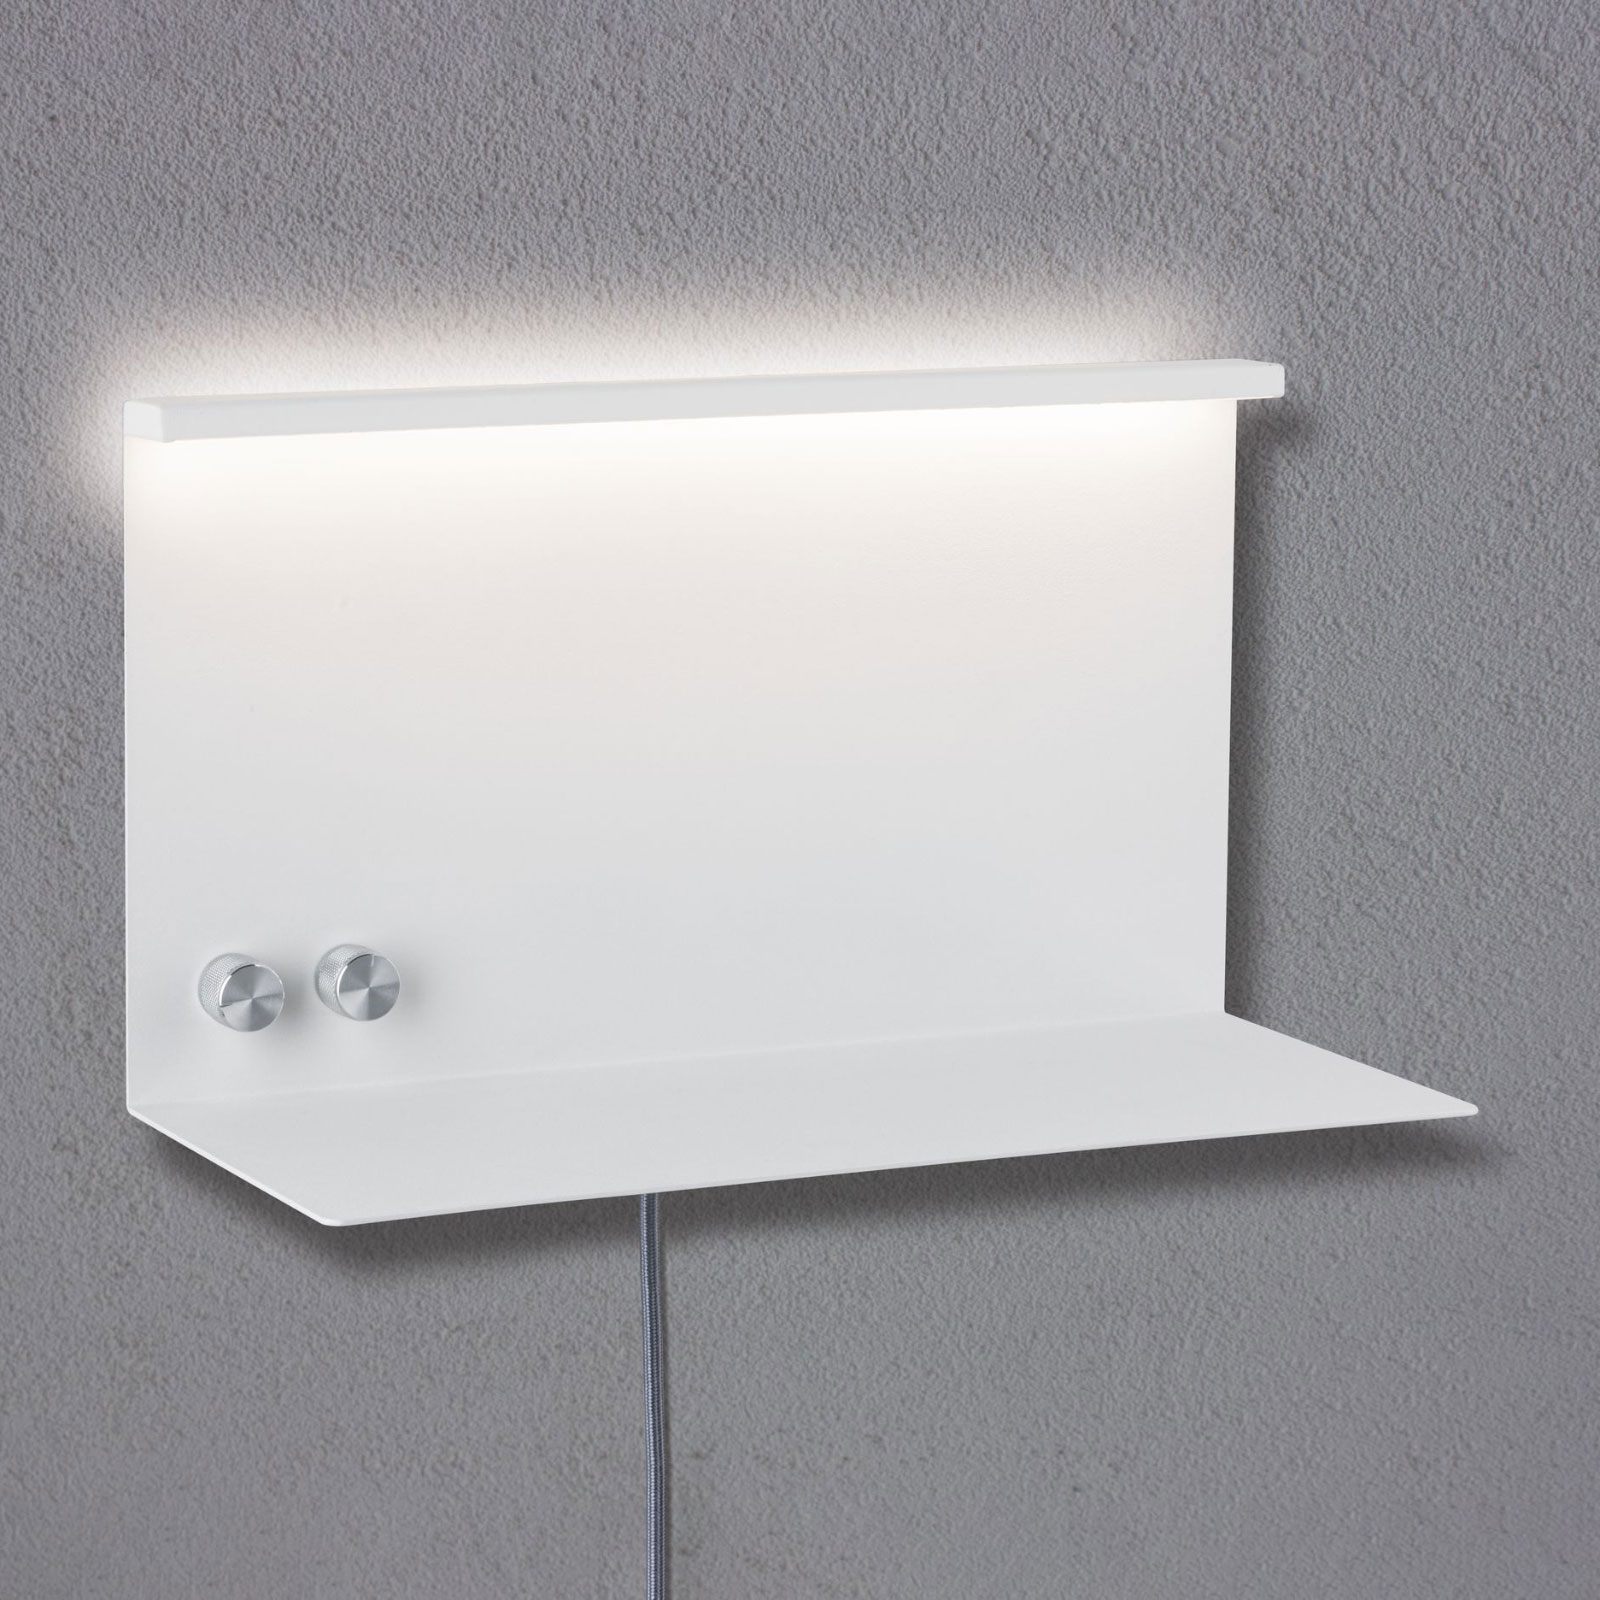 Paulmann Jarina applique LED à 2 lampes